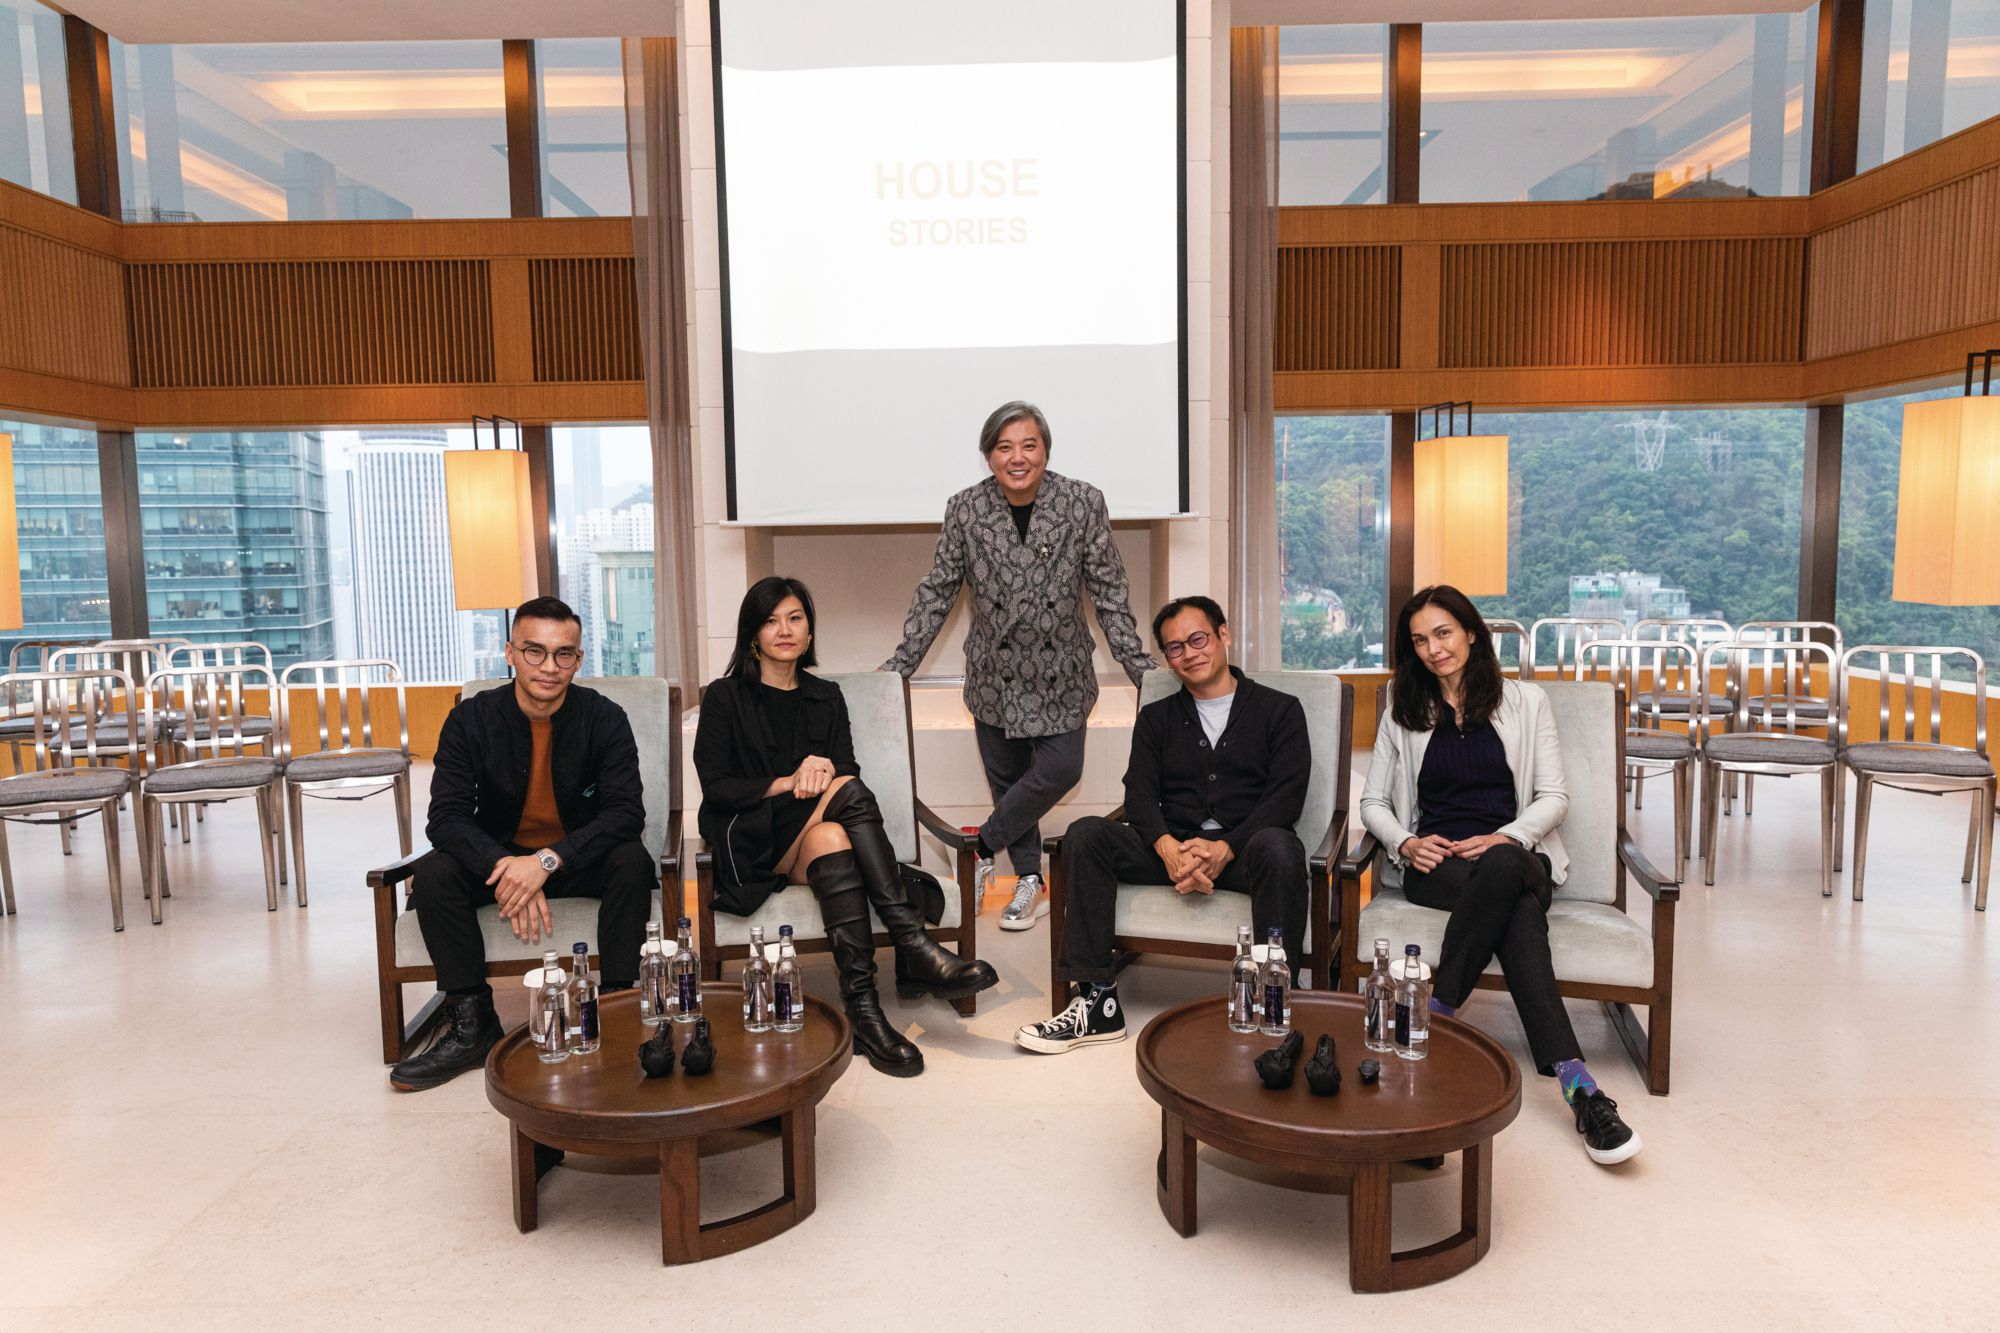 Tatler's House Stories: A Panel Discussion On The Future Of Architecture And Design In The Post-Pandemic Era